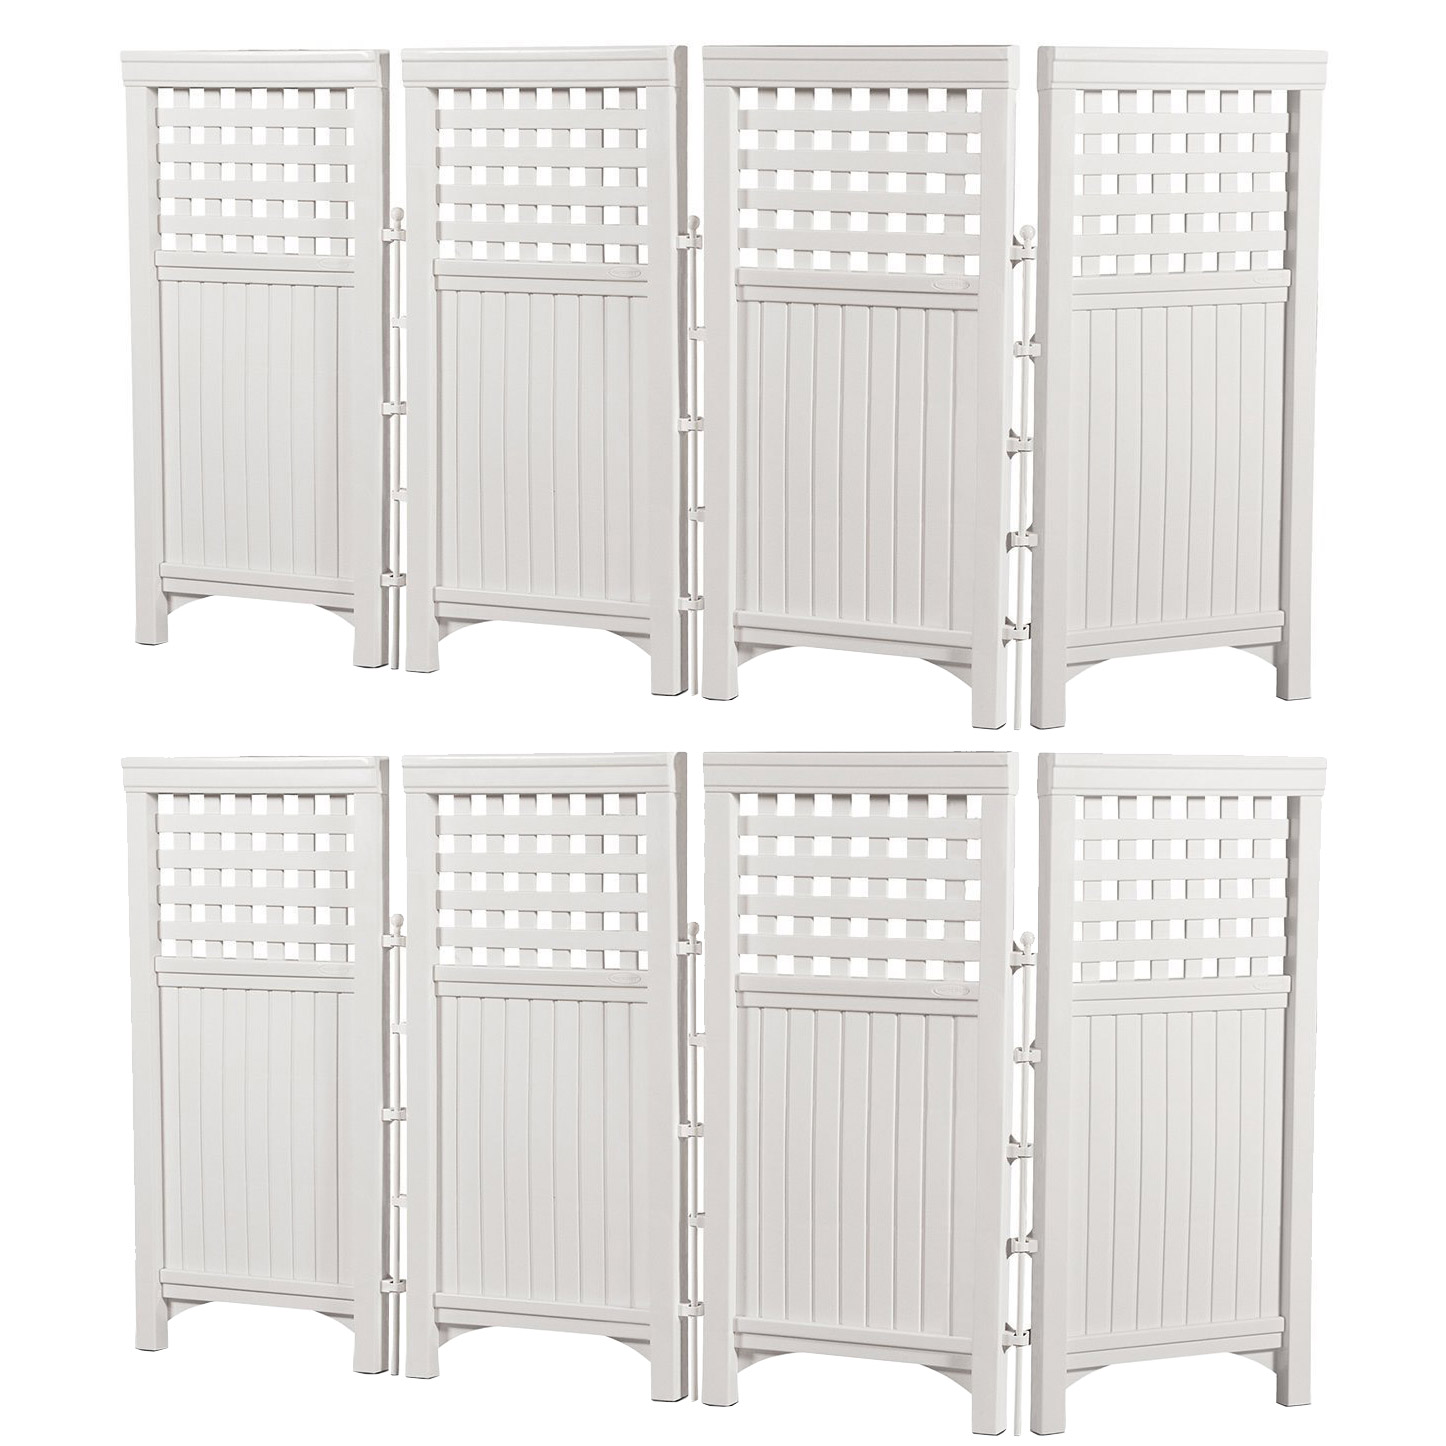 Suncast Outdoor Garden Yard 4 Panel Screen Enclosure Gated Fence, White (2 Pack) by Decorative Fences